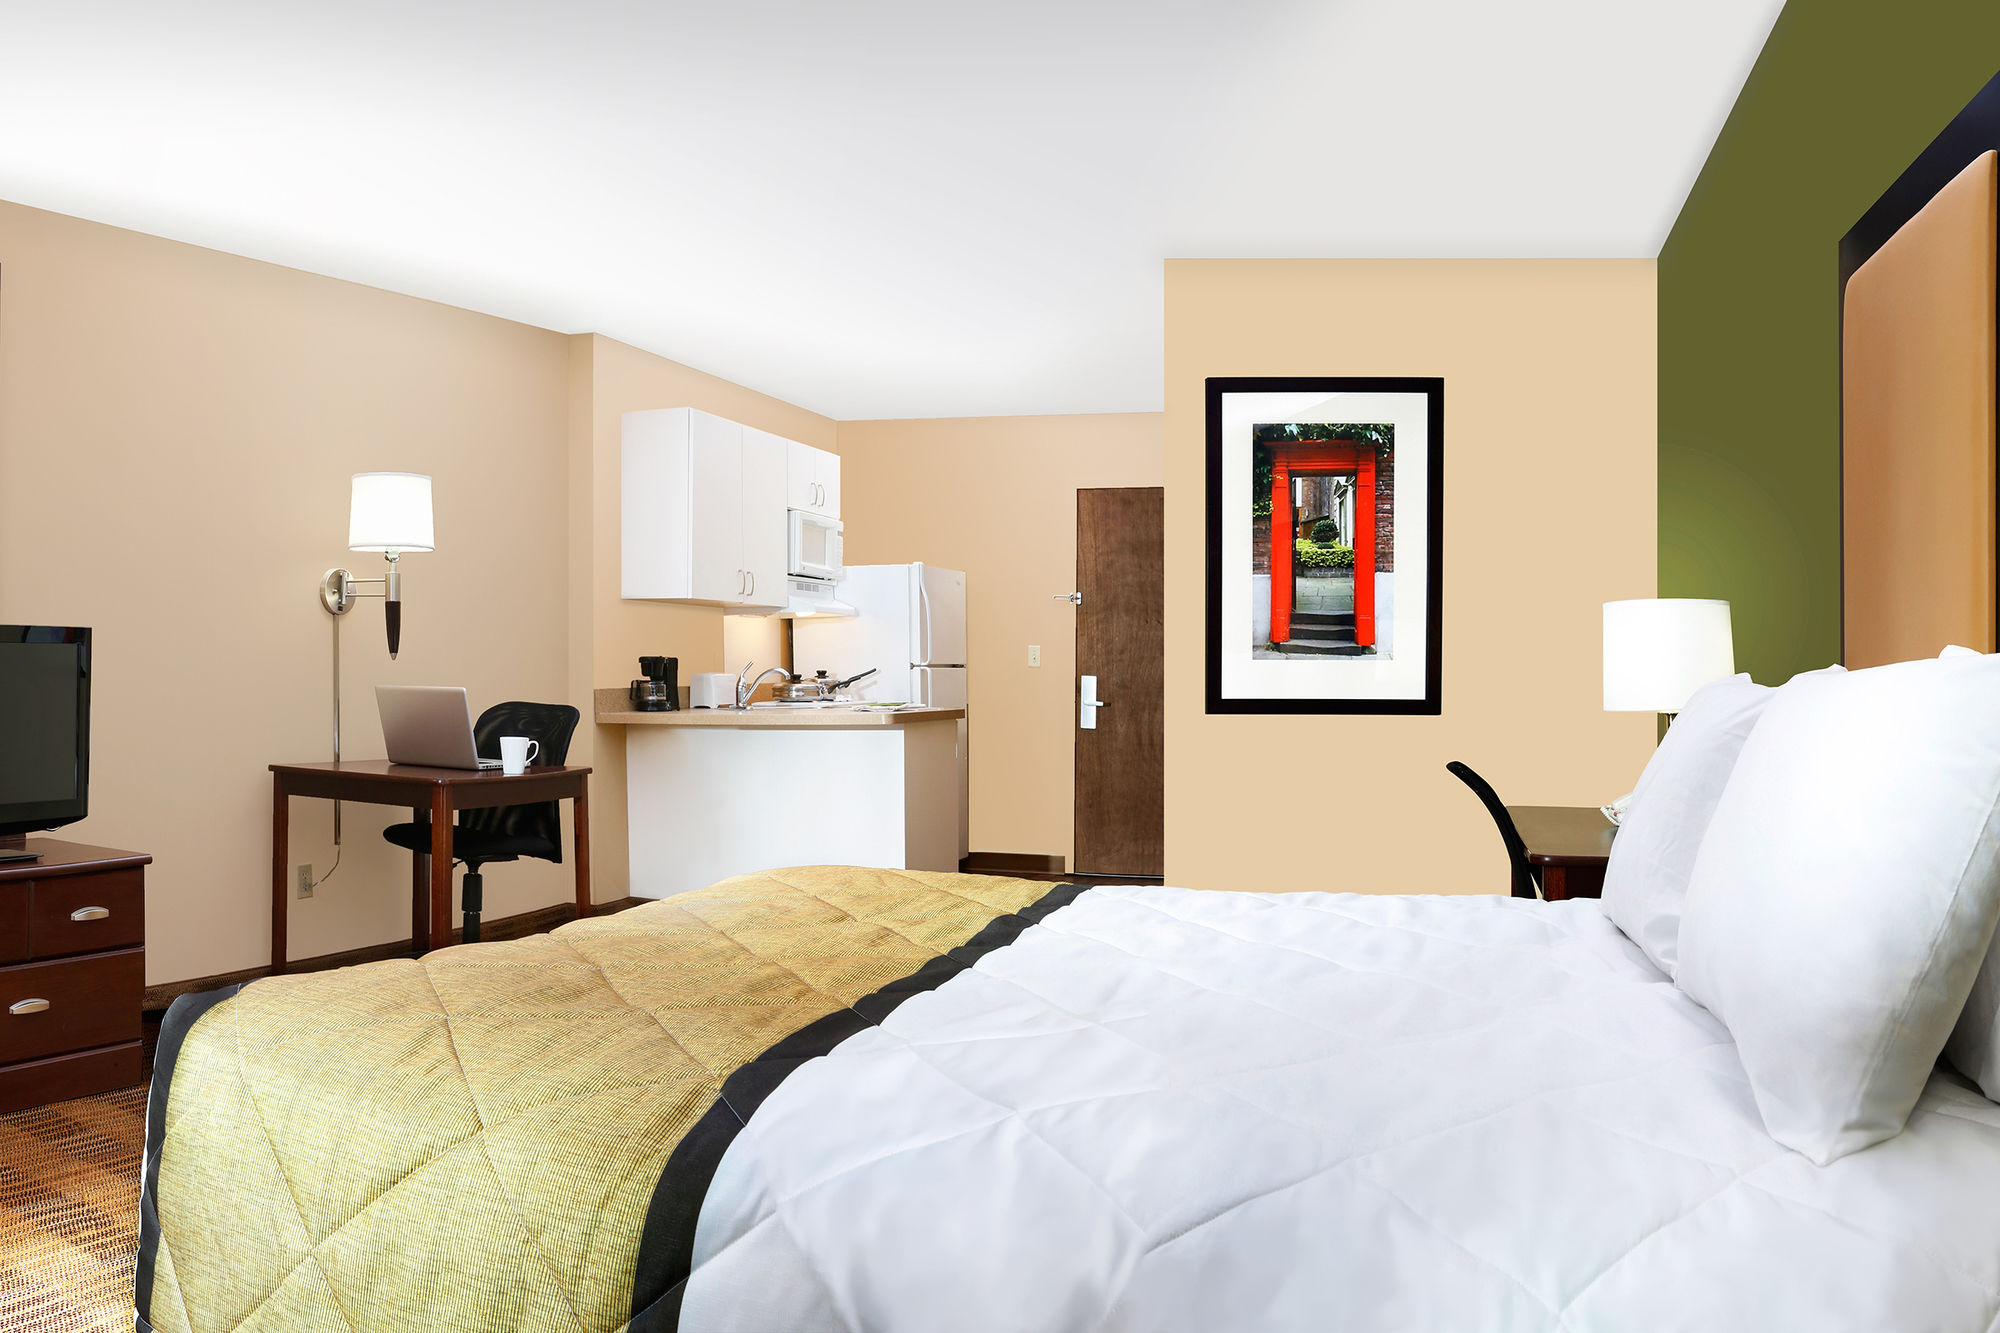 ann arbor hotel coupons for ann arbor michigan freehotelcoupons com